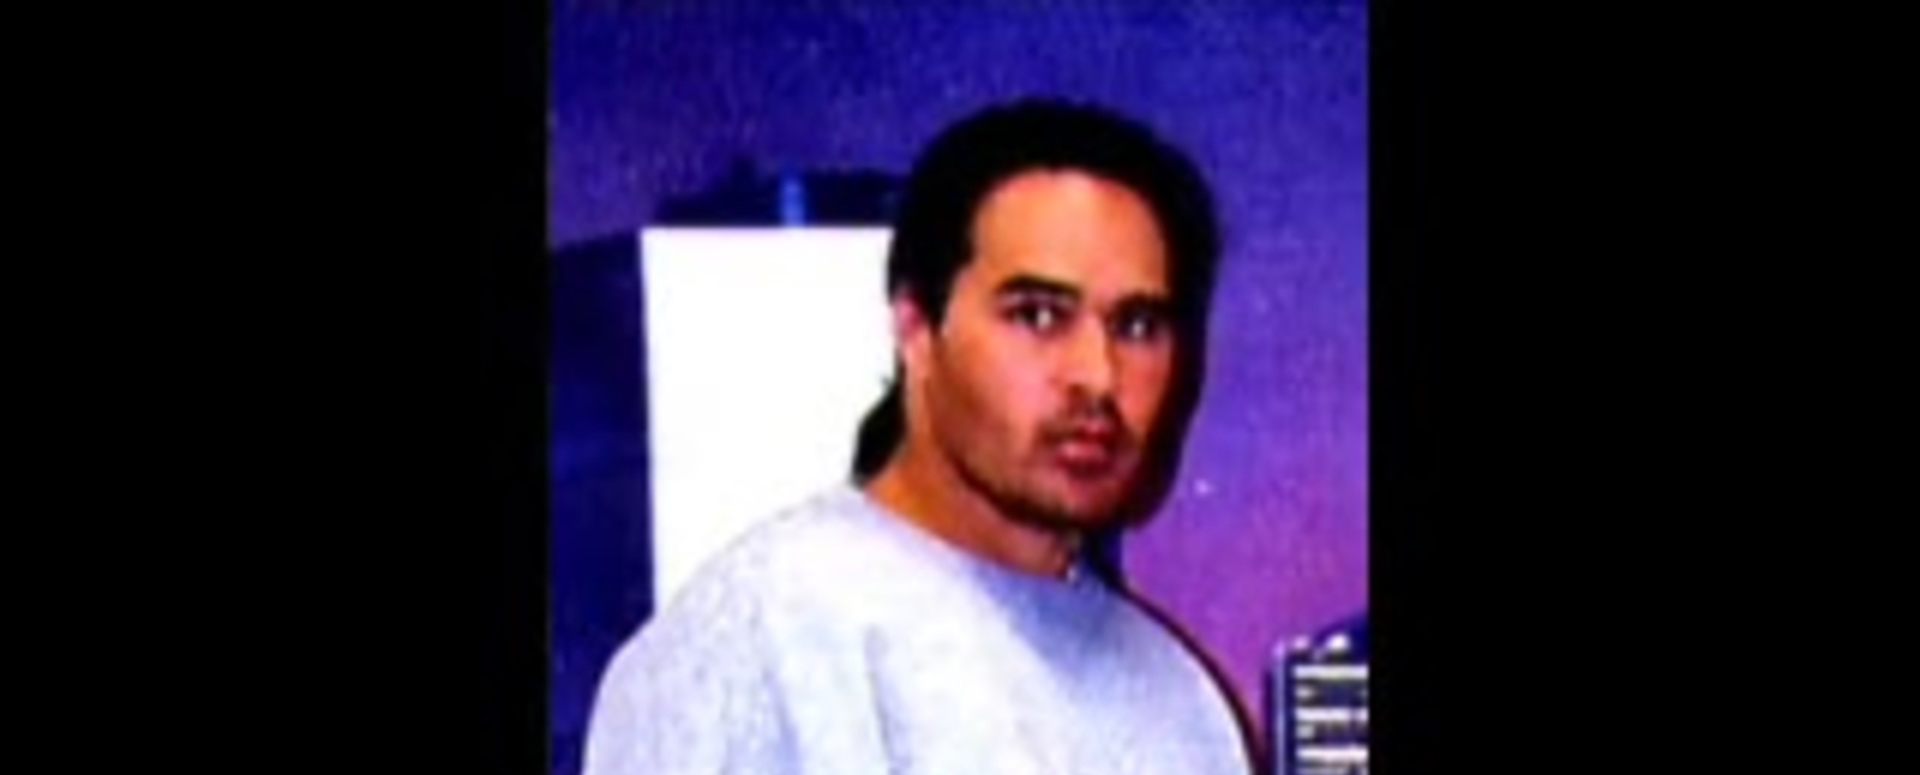 Support Prisoner Oso Blanco with Encouragement, Indigenous ...